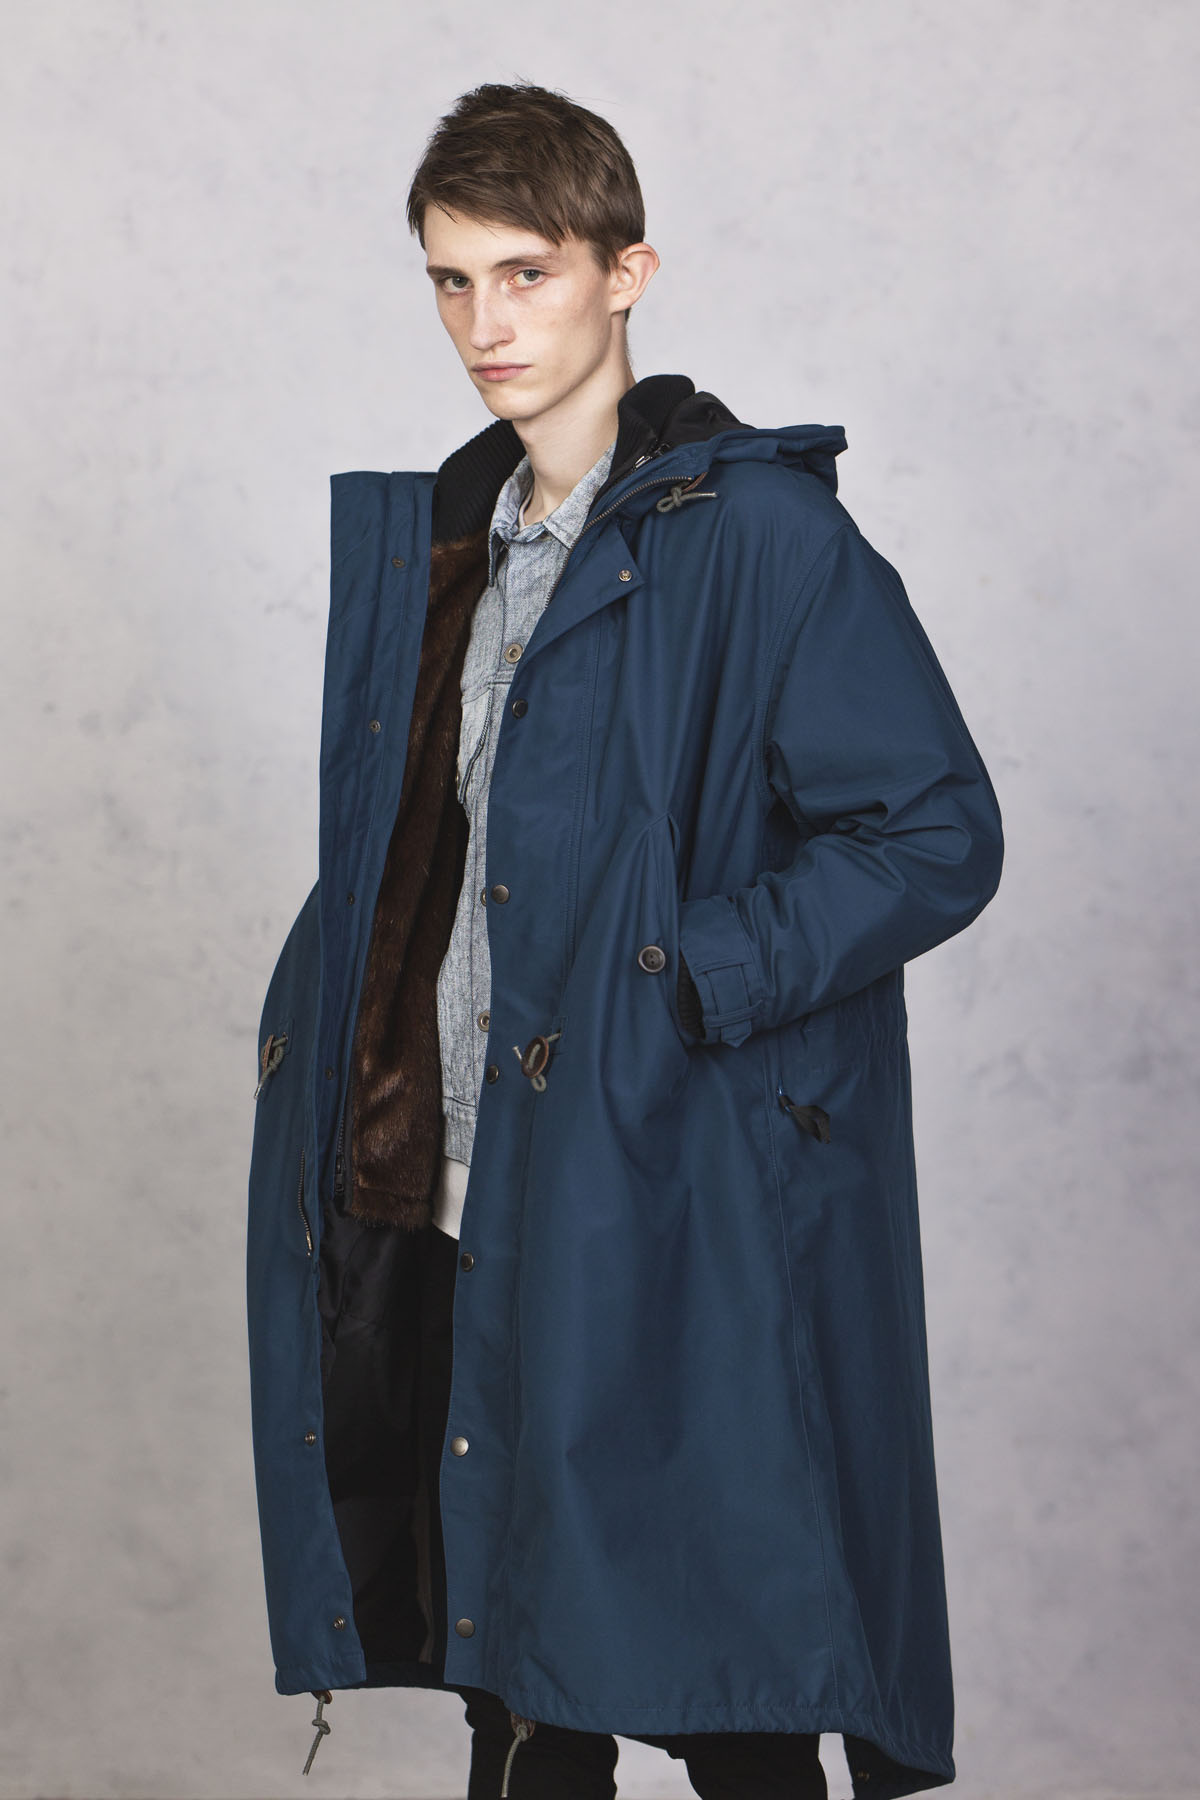 【MEN】JOHNBULL WINTER October 2018 アイテム